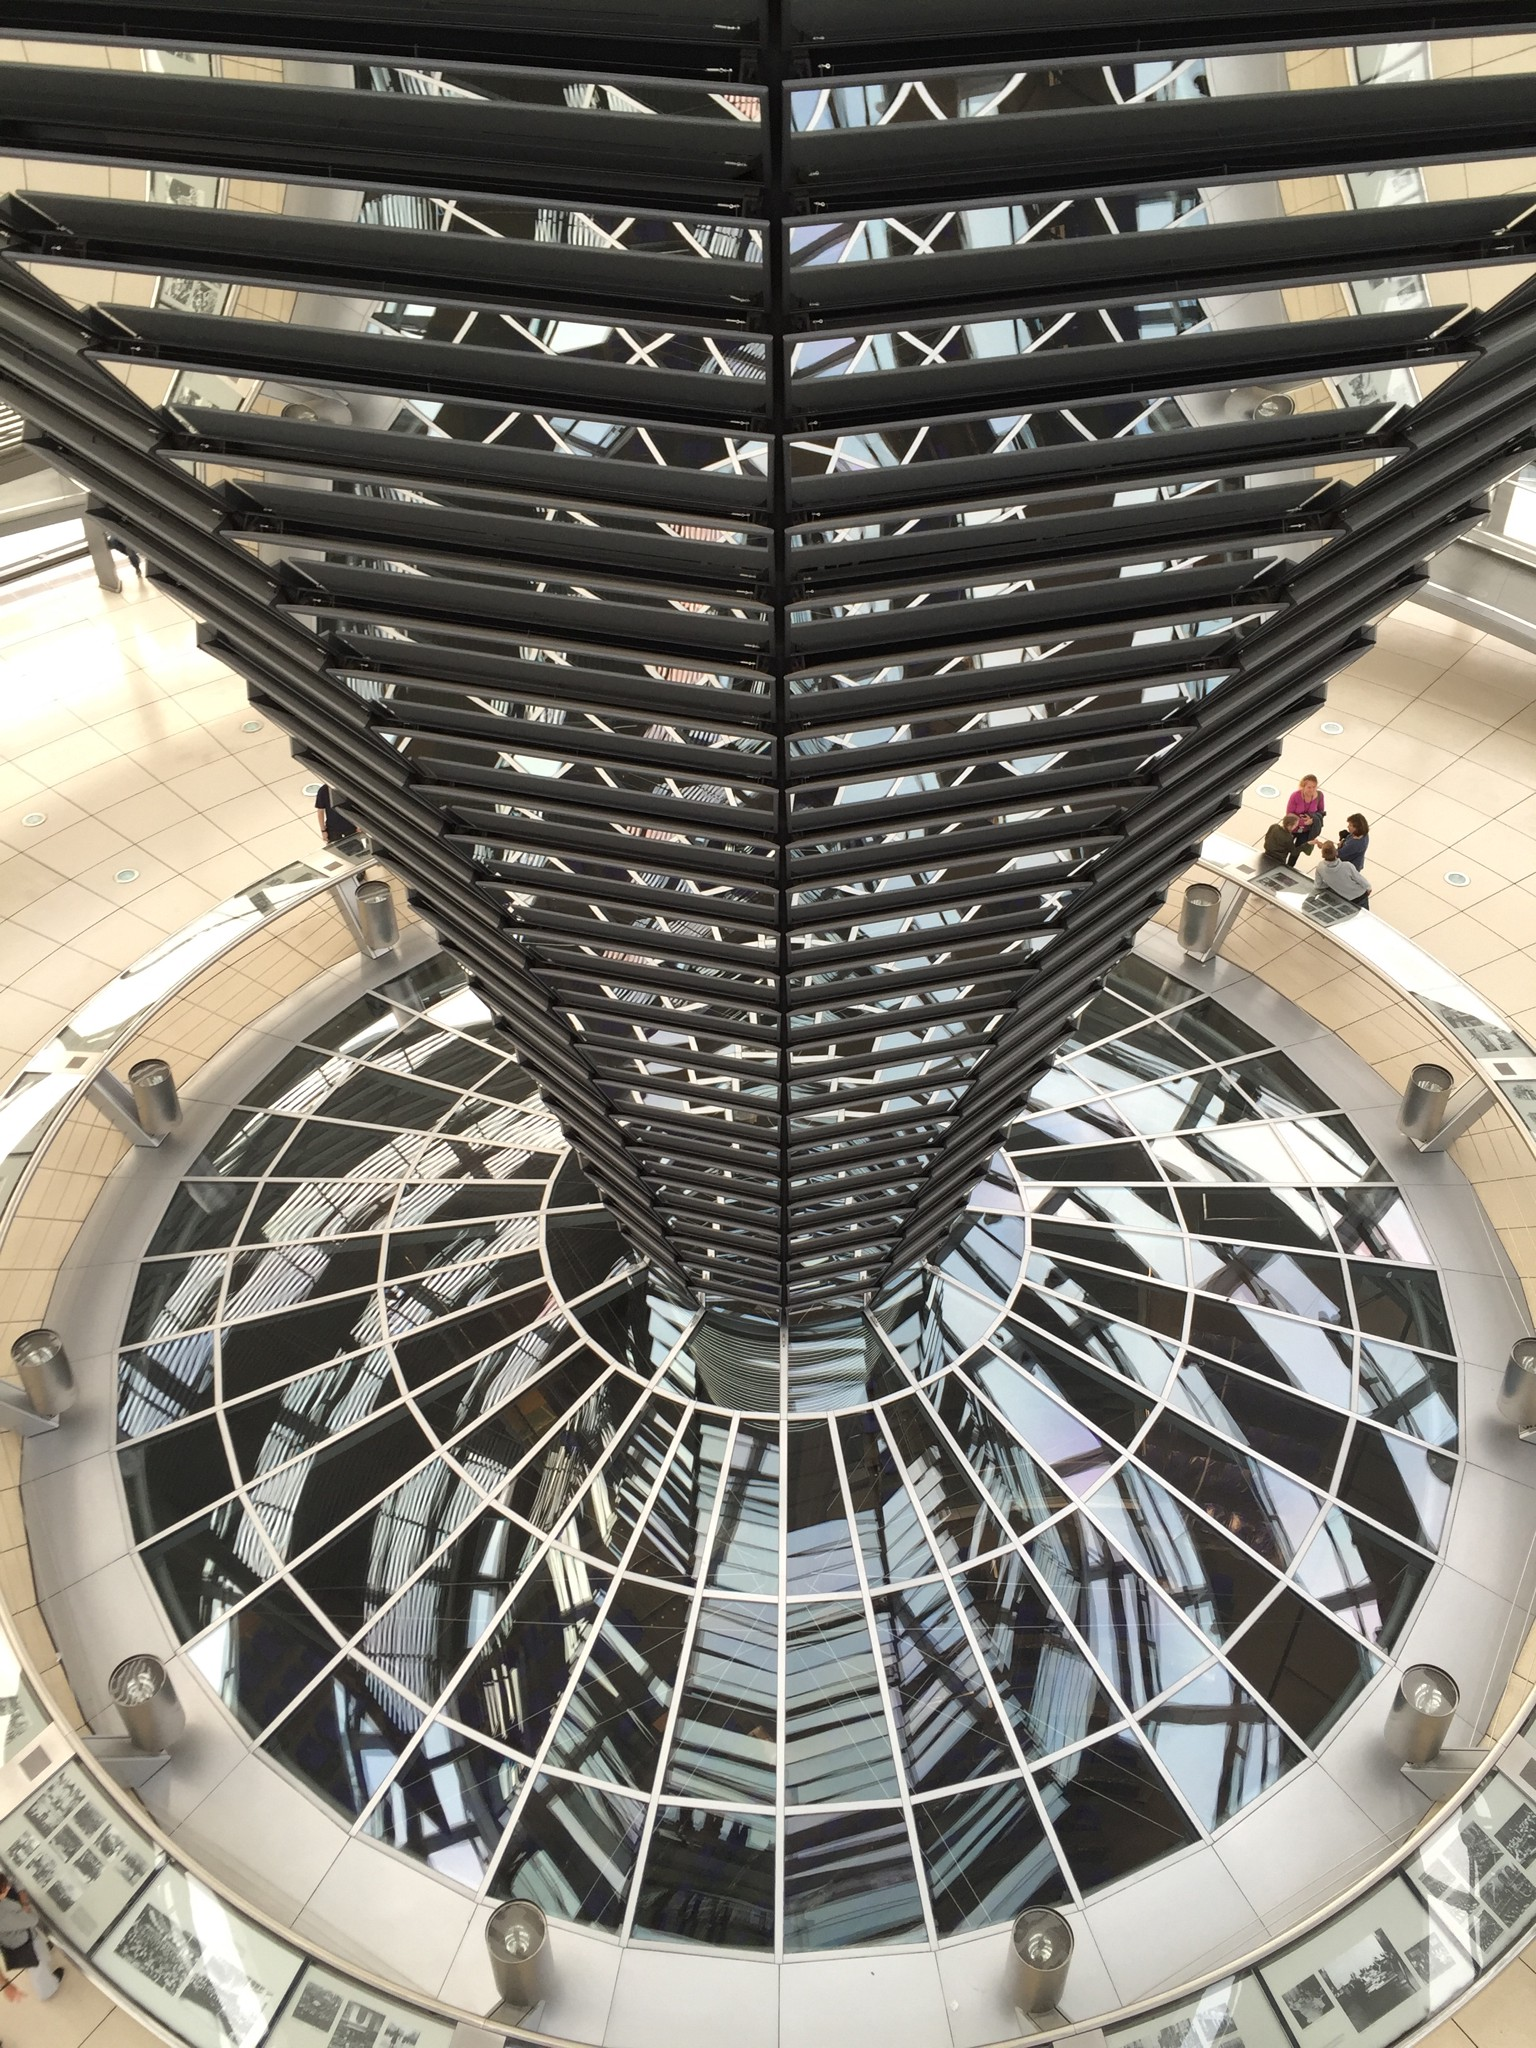 Looking down into the spiral